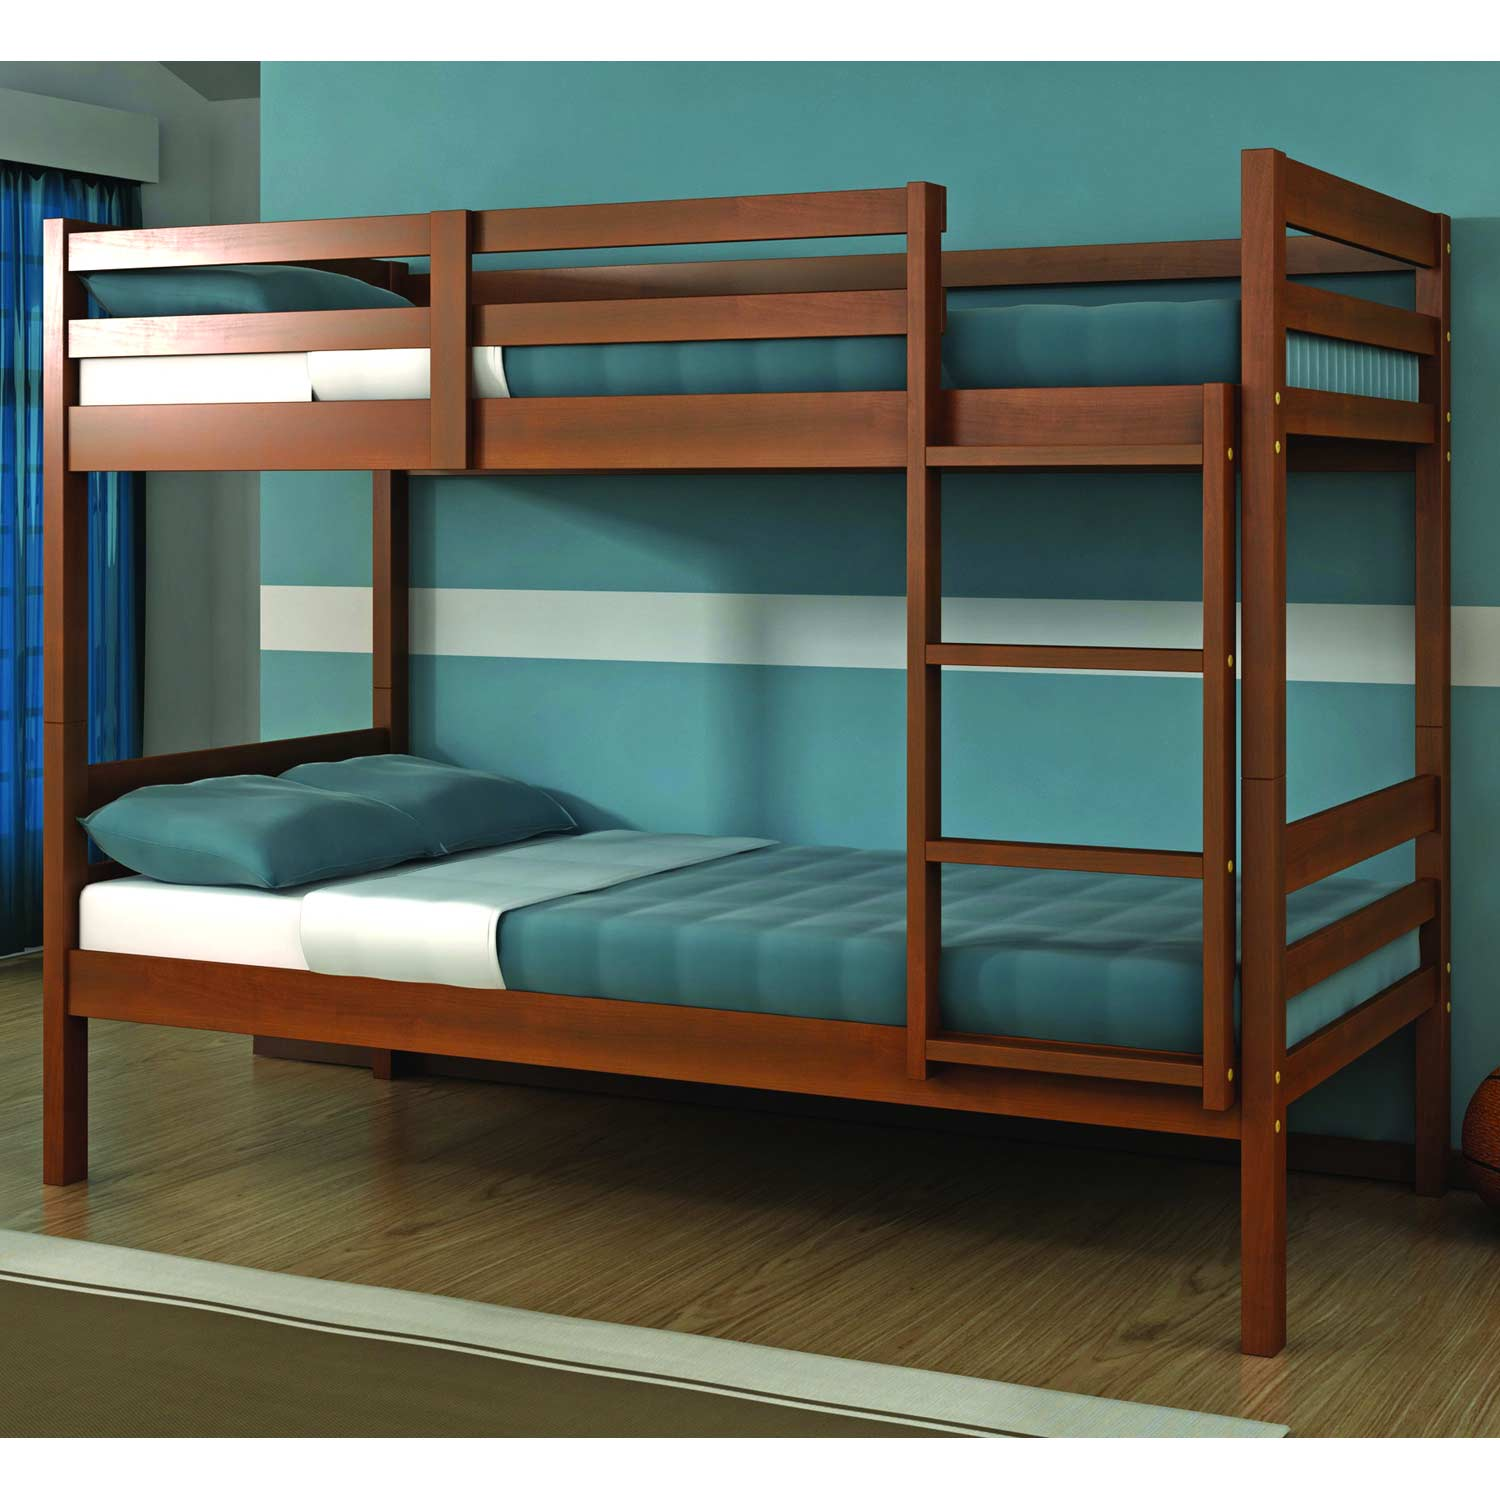 Mind Econo Ranch Twin Bunk Bed Light Espresso Econo Ranch Twin Bunk Bed Light Espresso Dcg Stores Bunk Bed Ladder Rv Bunk Bed Ladder Amazon houzz-02 Bunk Bed Ladder